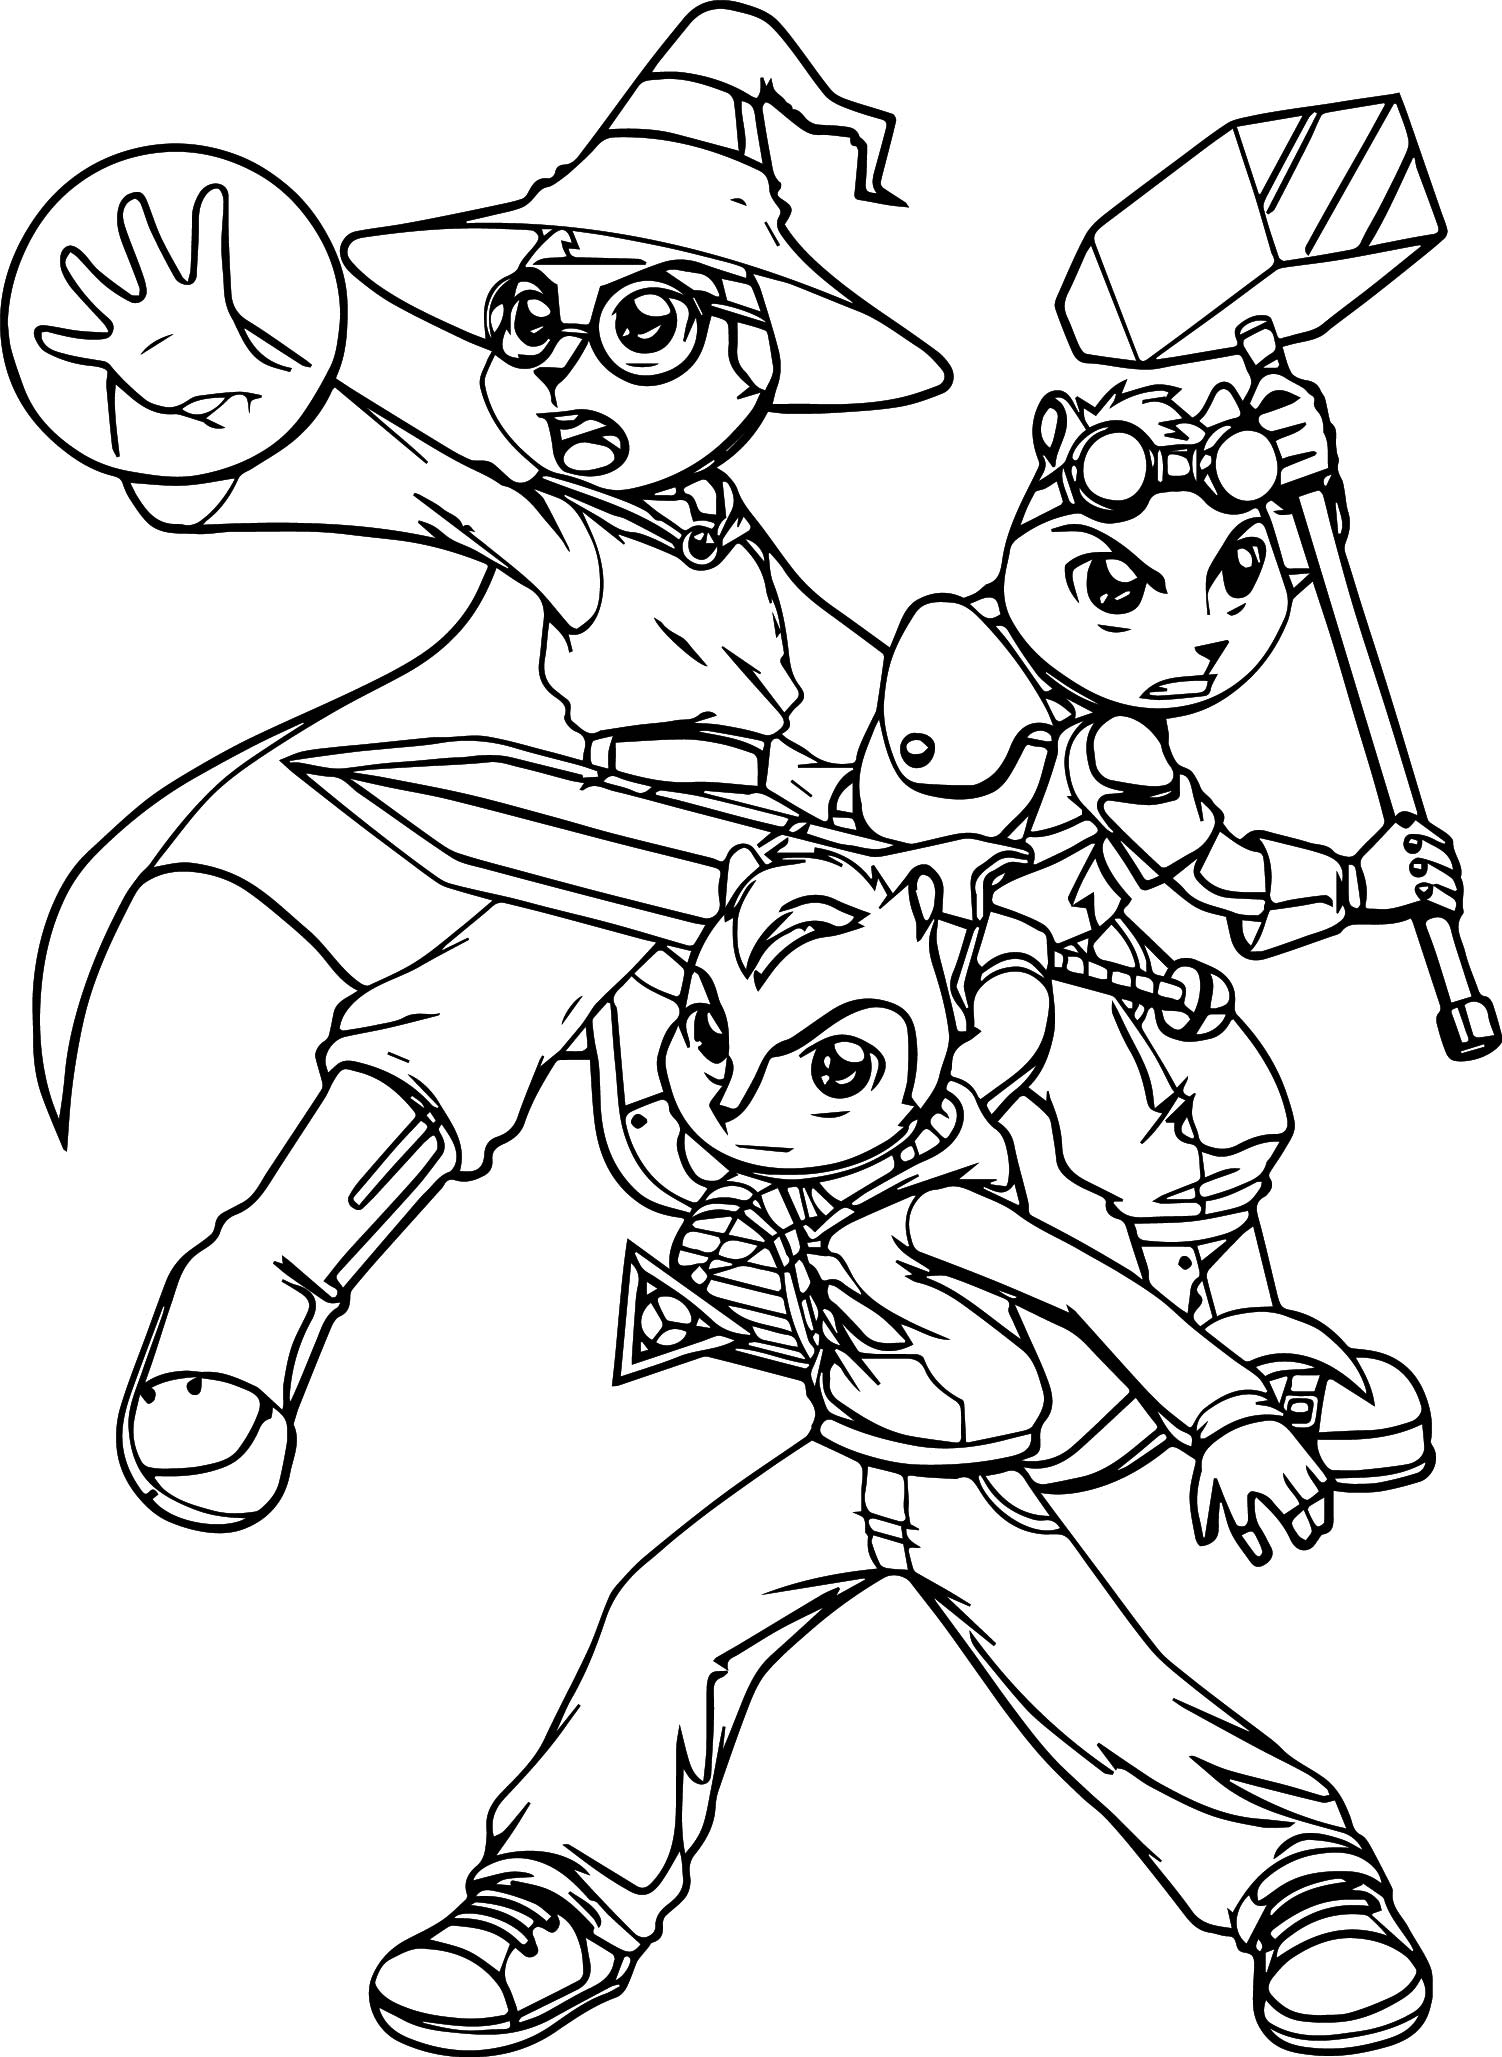 Alvin and the chipmunks trinity force coloring page for Alvin and the chipmunk coloring pages